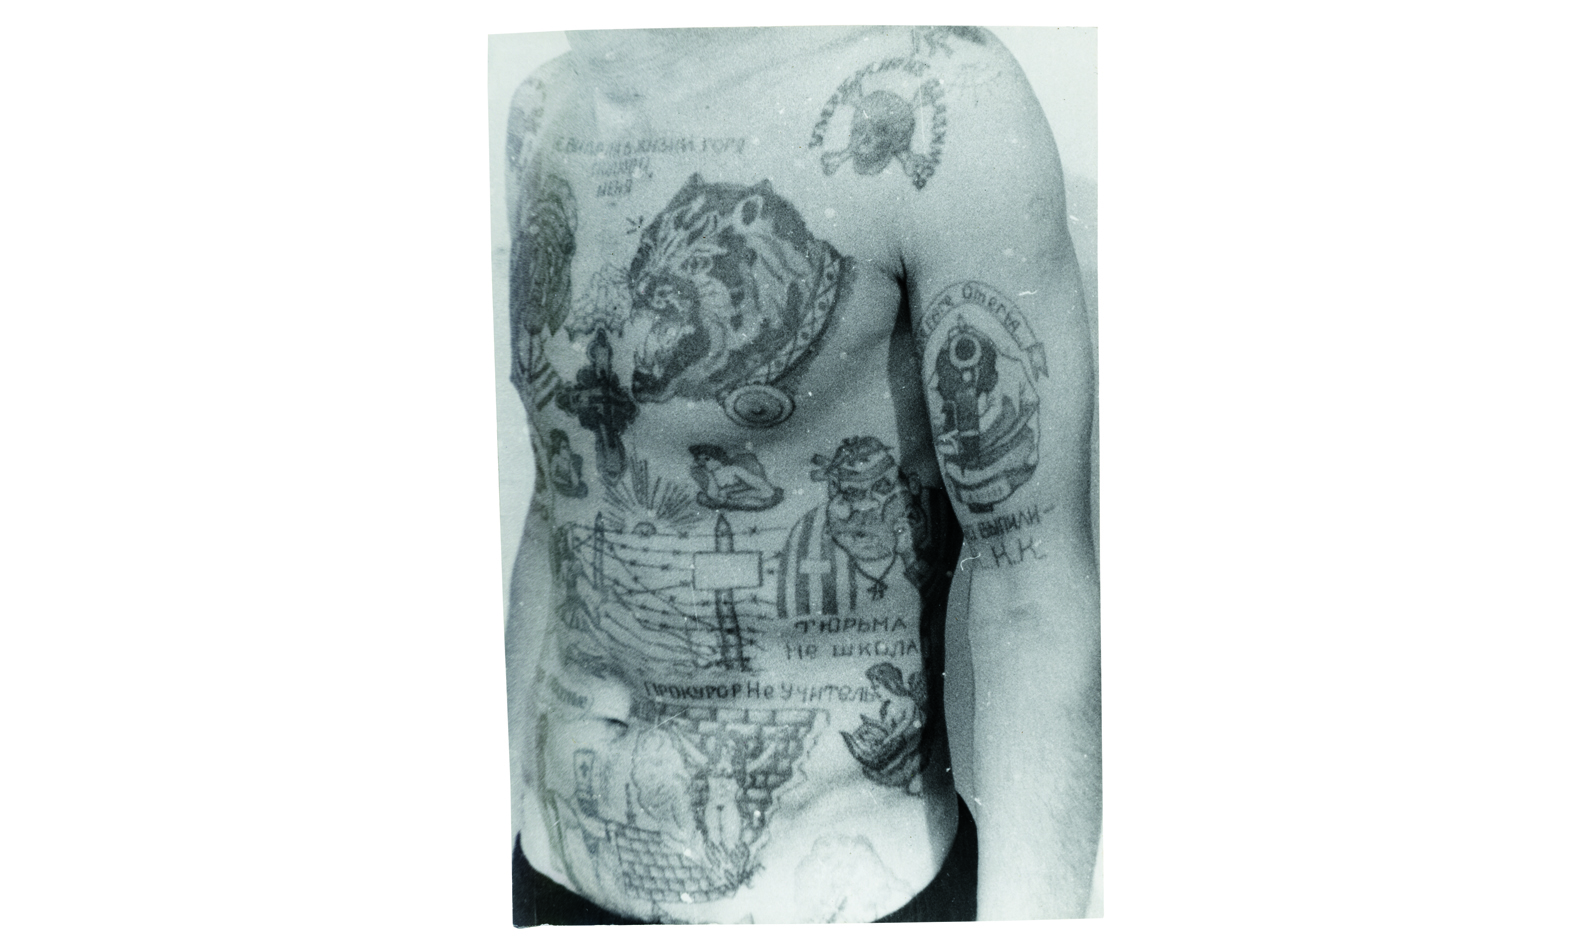 1539107294489-Russian-Criminal-Tattoos-and-Playing-Cards-p123